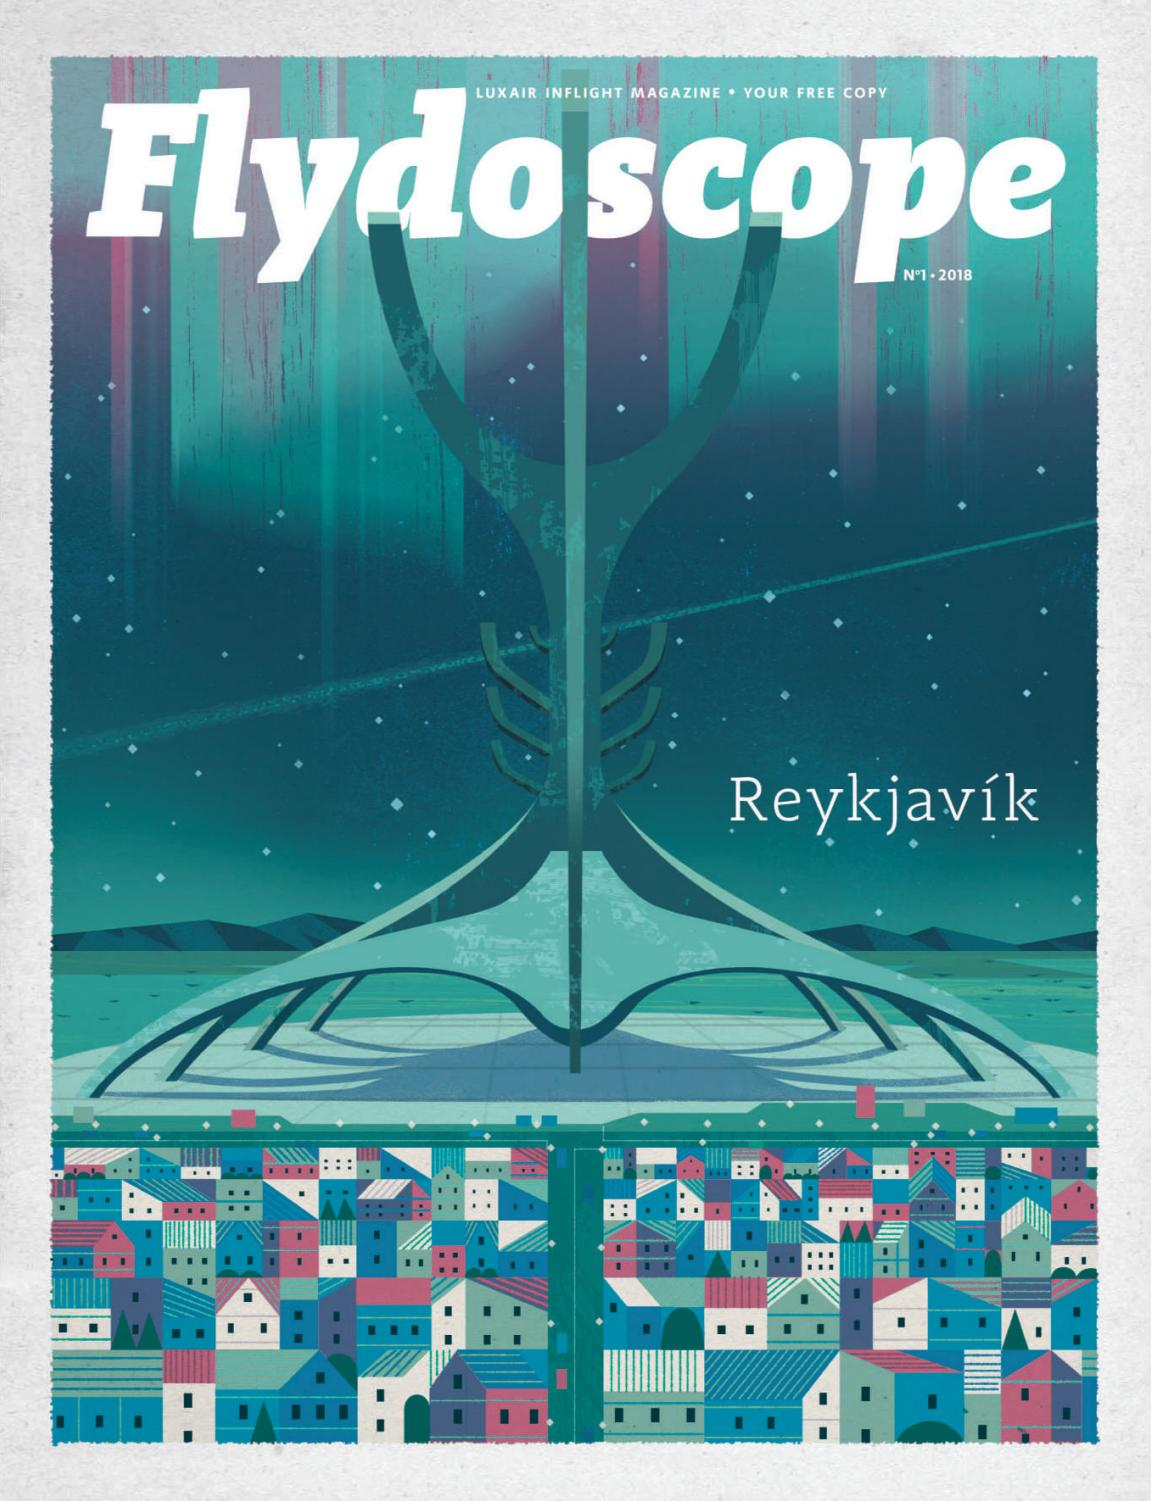 Cash Pool C'est Quoi Flydoscope 2018 N1 By Maison Moderne Issuu